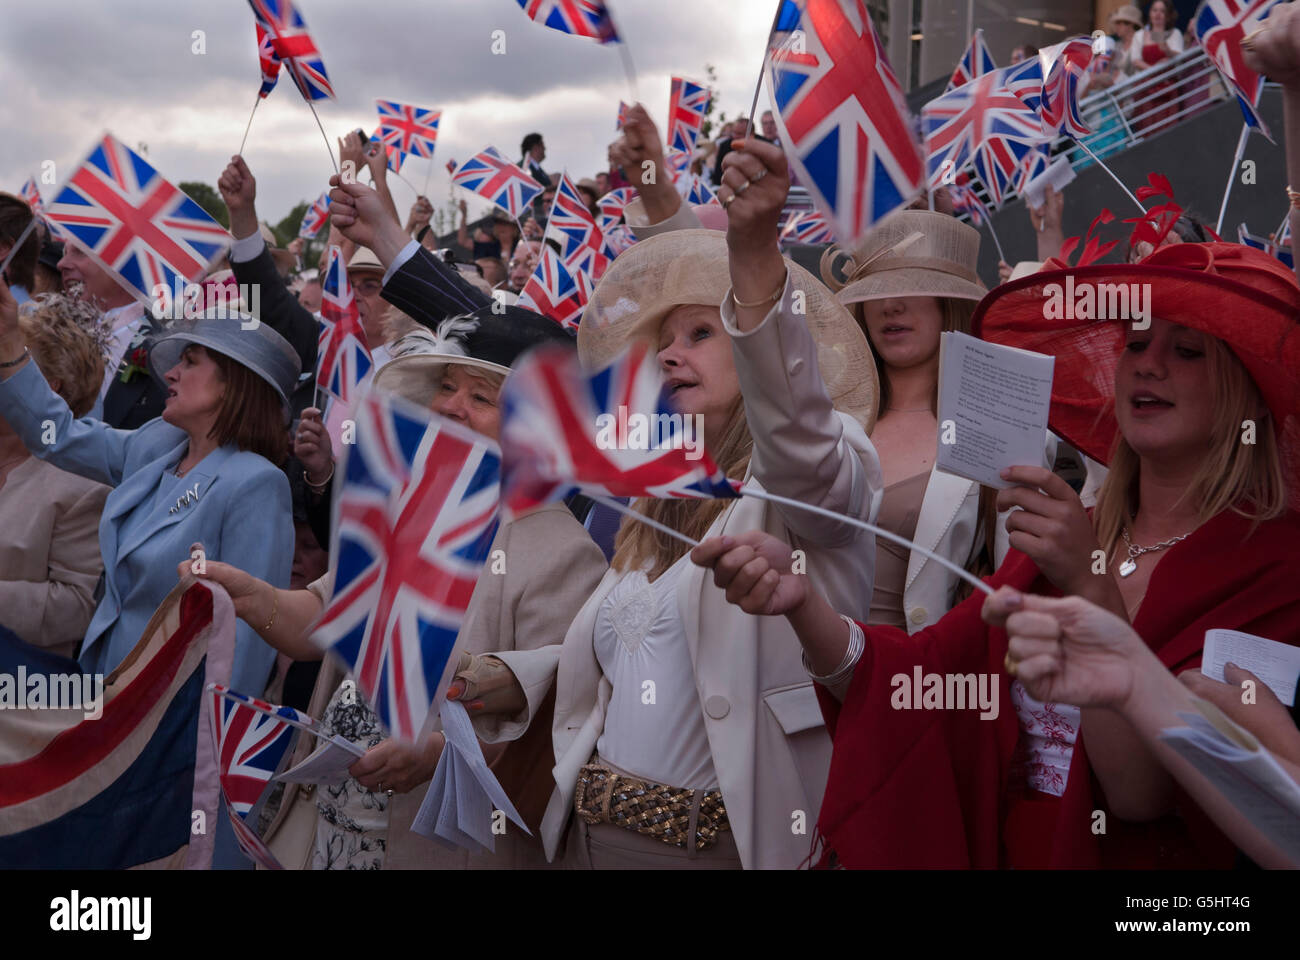 Royal Ascot singing 'land of hope and glory' around the bandstand at the end of Ascot horse tracing.2000s - Stock Image